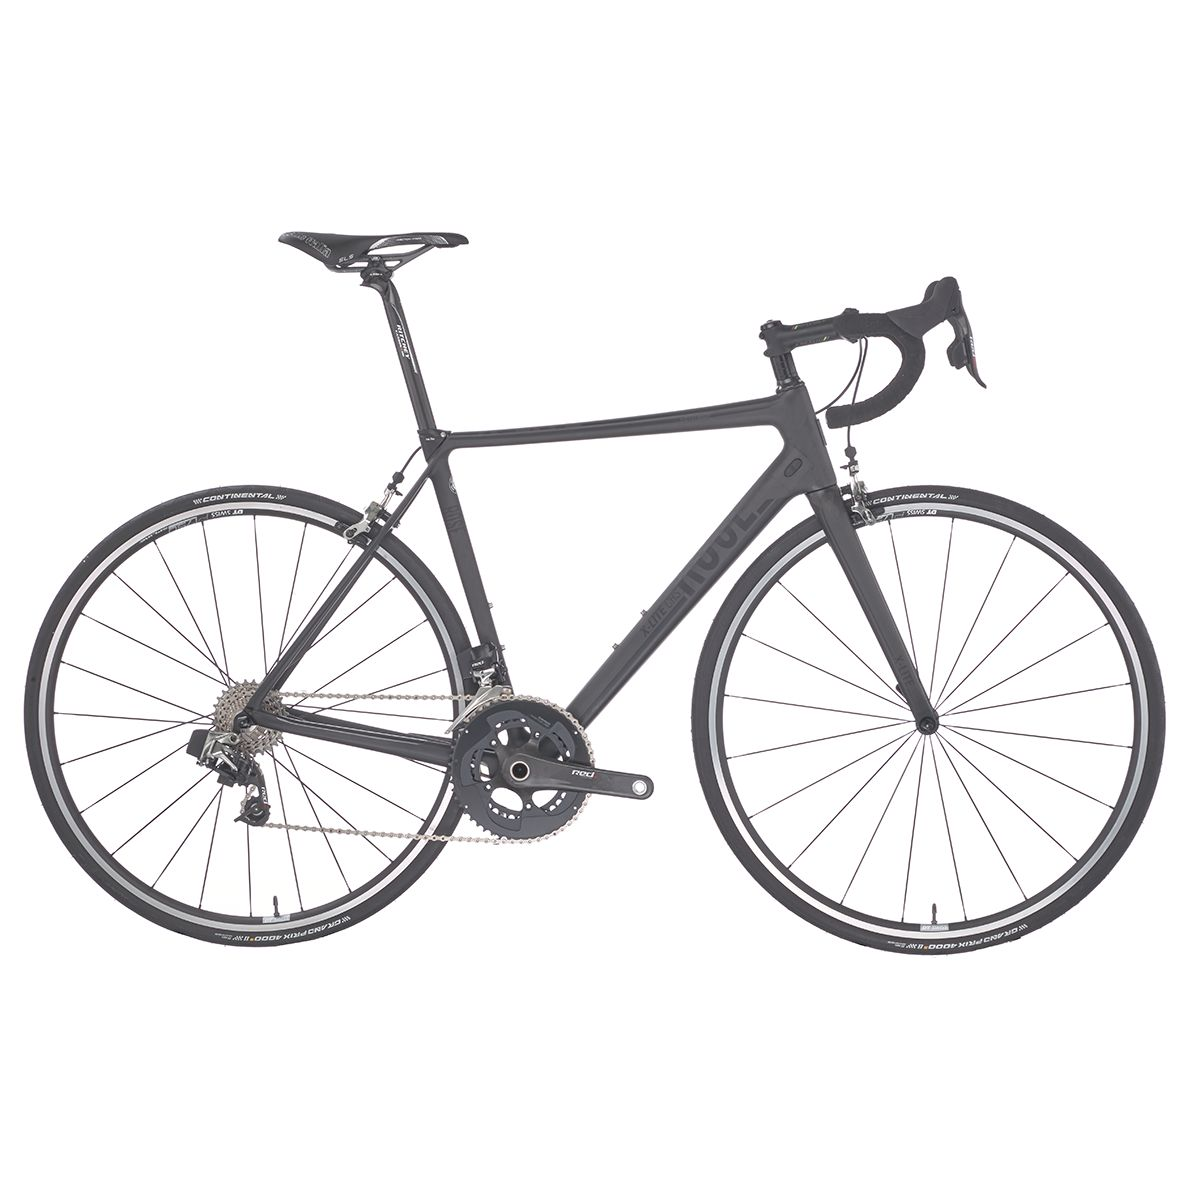 X-LITE CRS-8810 eTap new bike